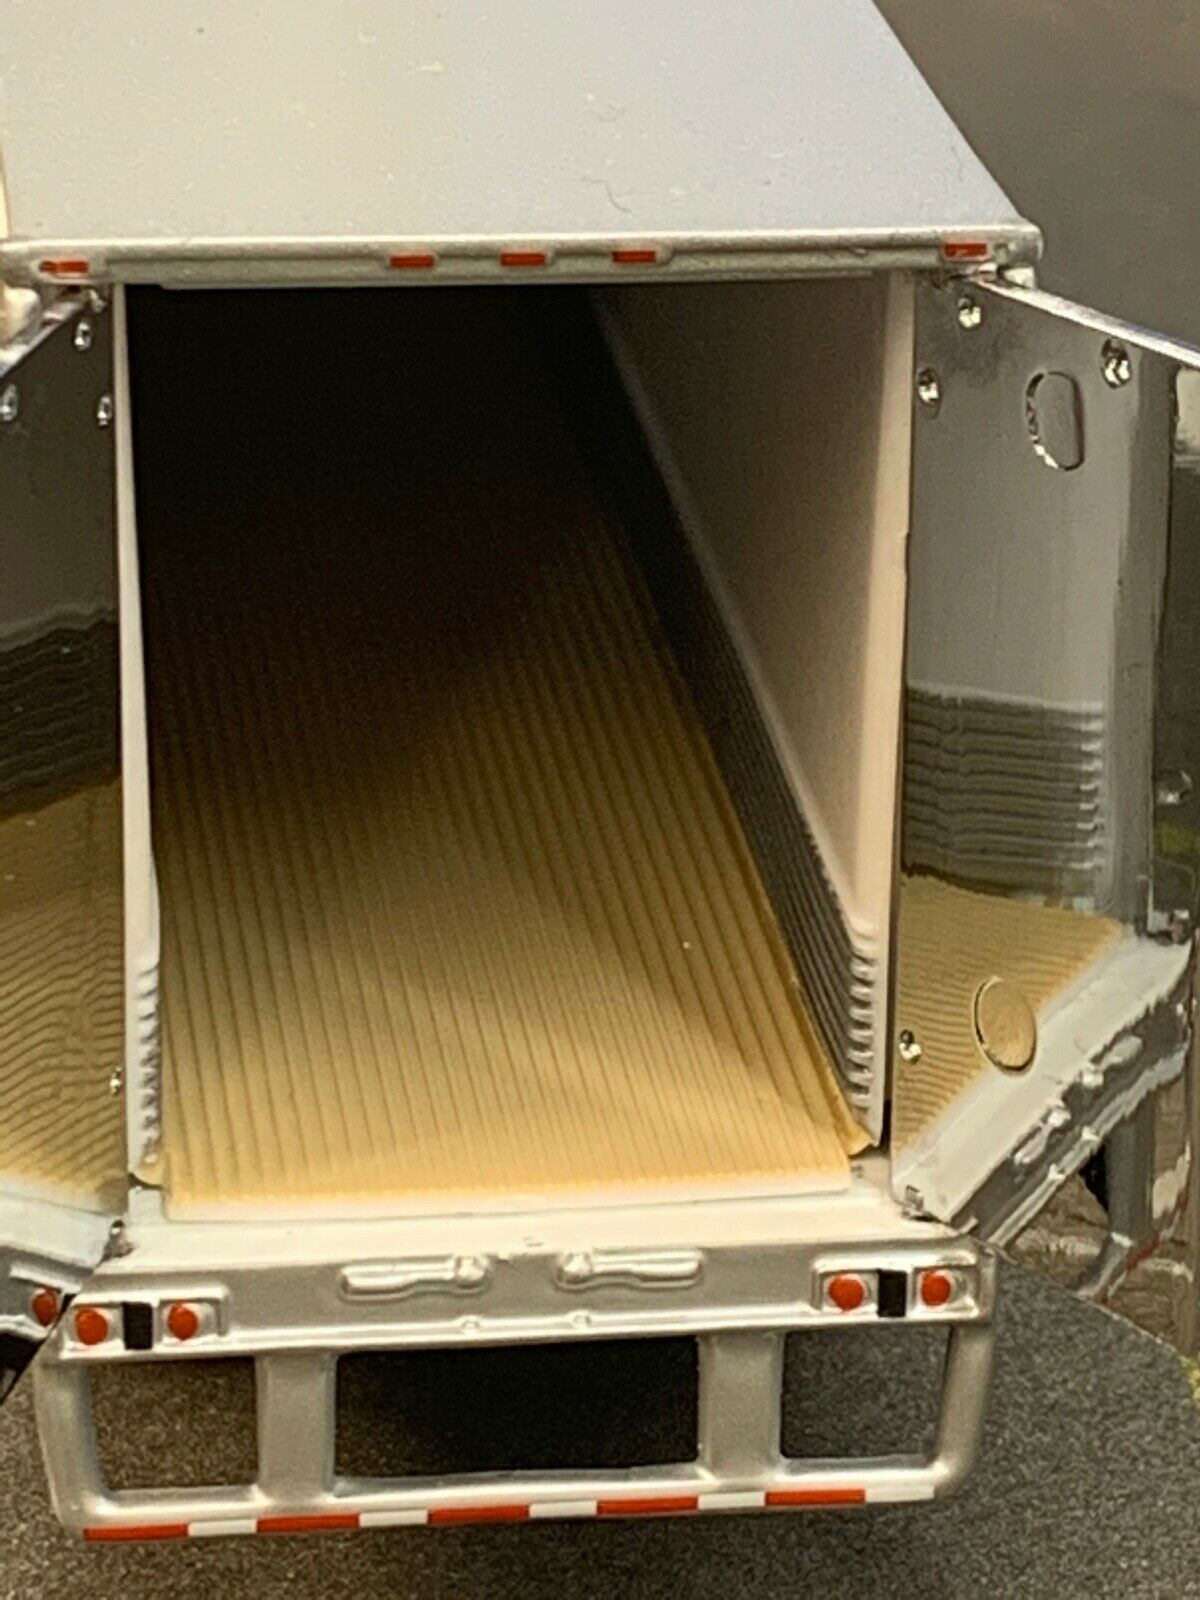 1/64 DCP WHITE WABASH 53' ARTICLITE TANDEM (SUPER SINGLES) W/ THERMO KING REEFER 2